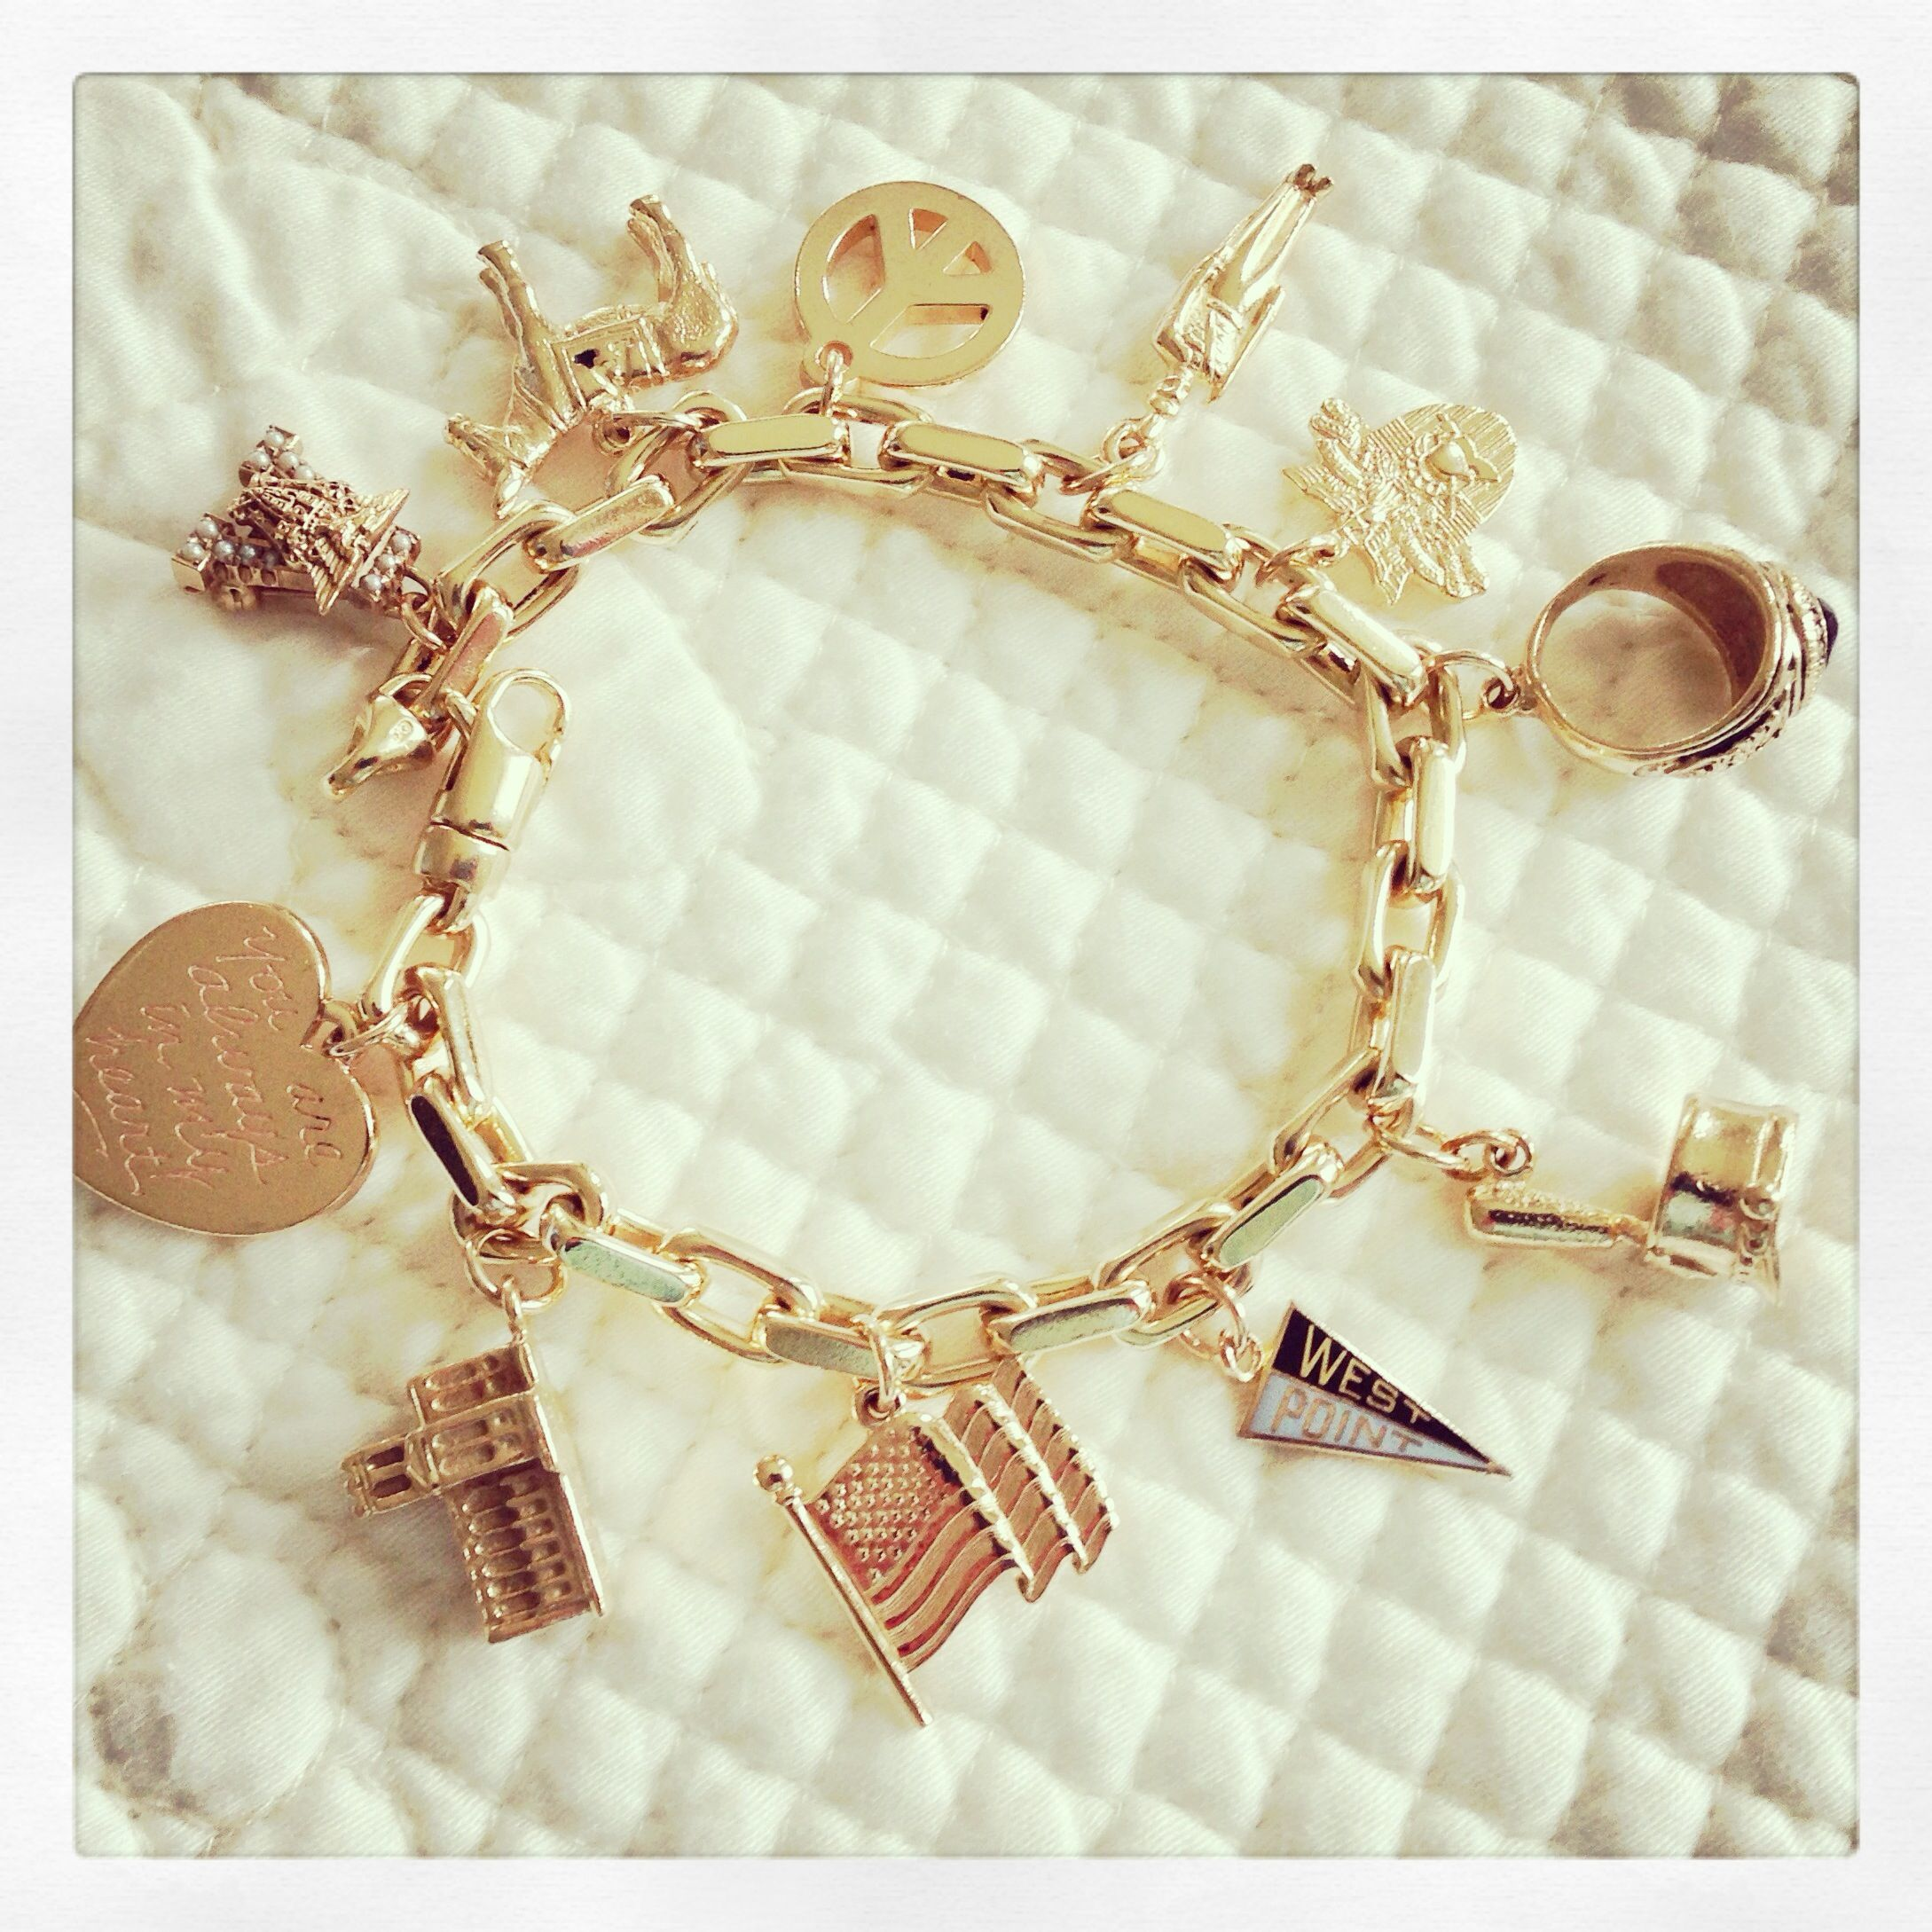 USMA charm bracelet. Gold West Point charms.